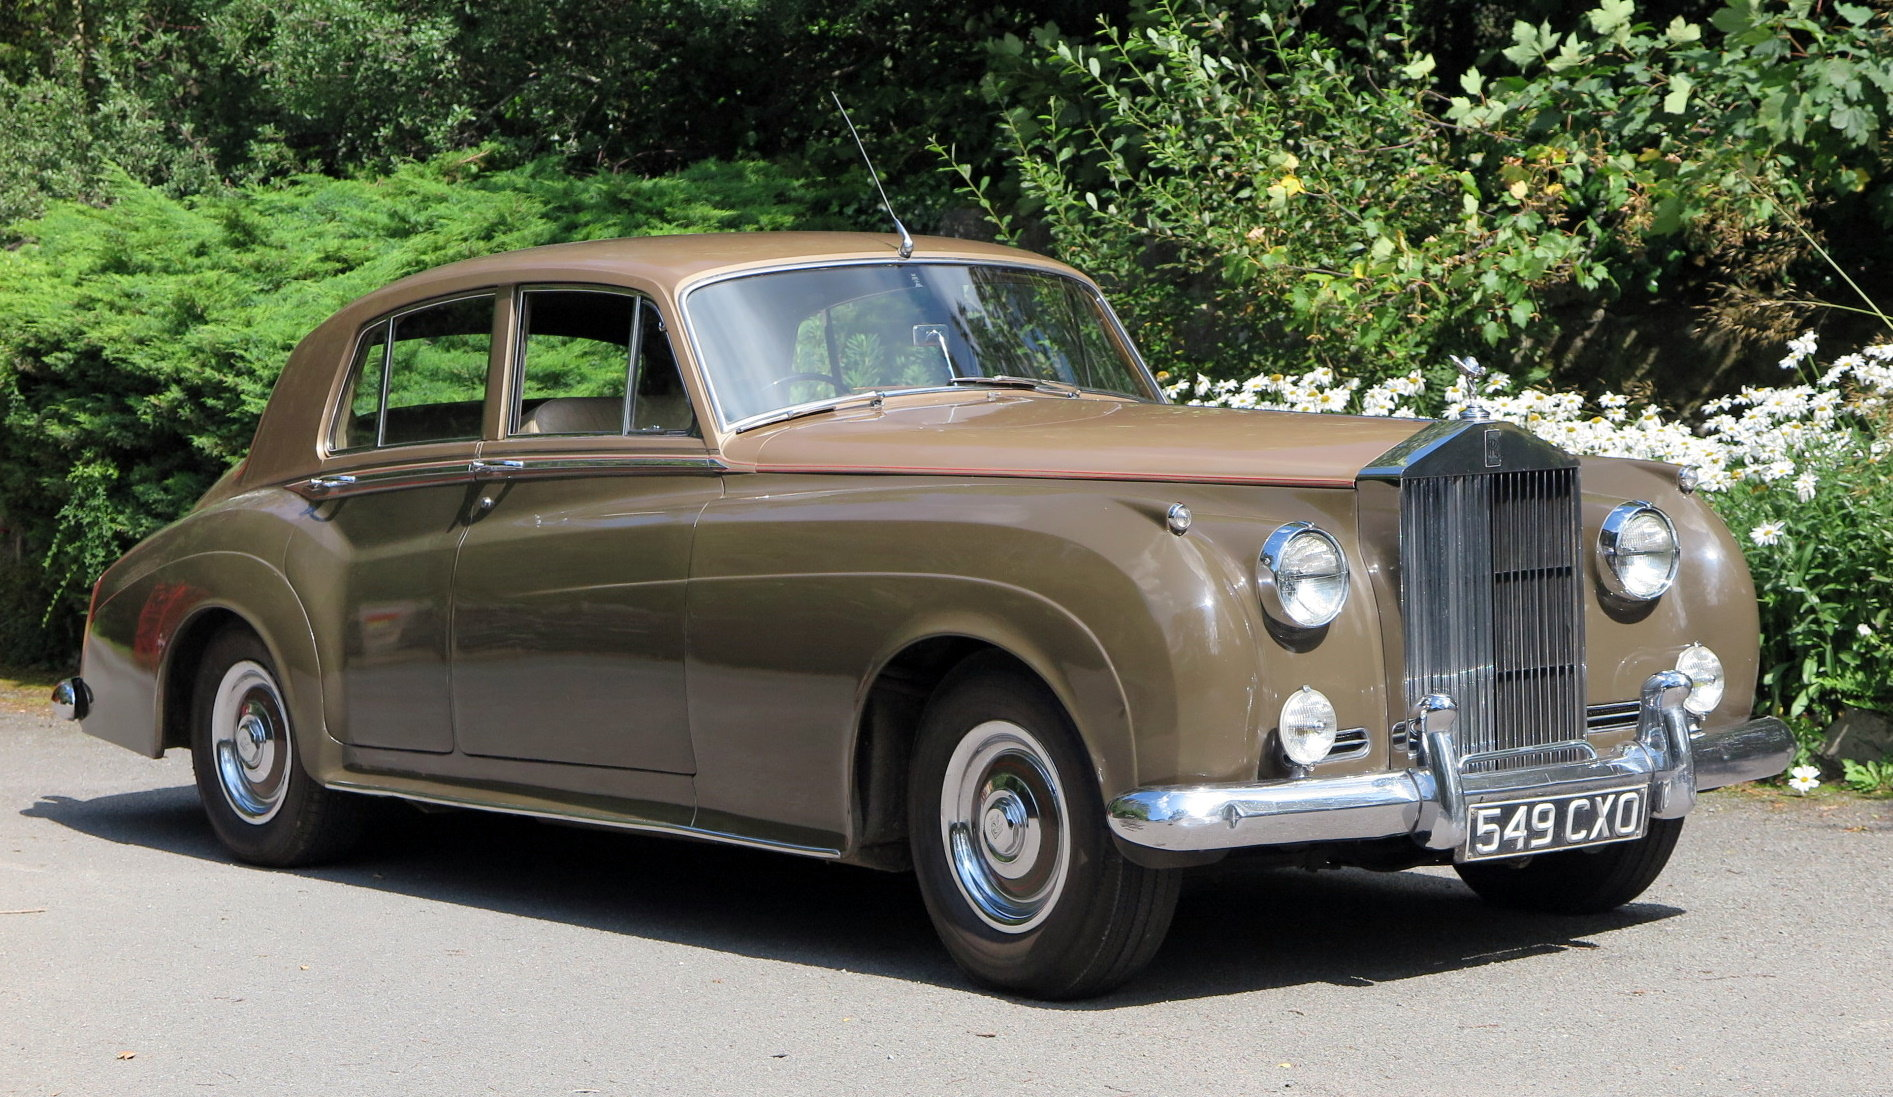 1961 Rolls-Royce Silver Cloud II Four Door Saloon SZD241 For Sale (picture 1 of 6)